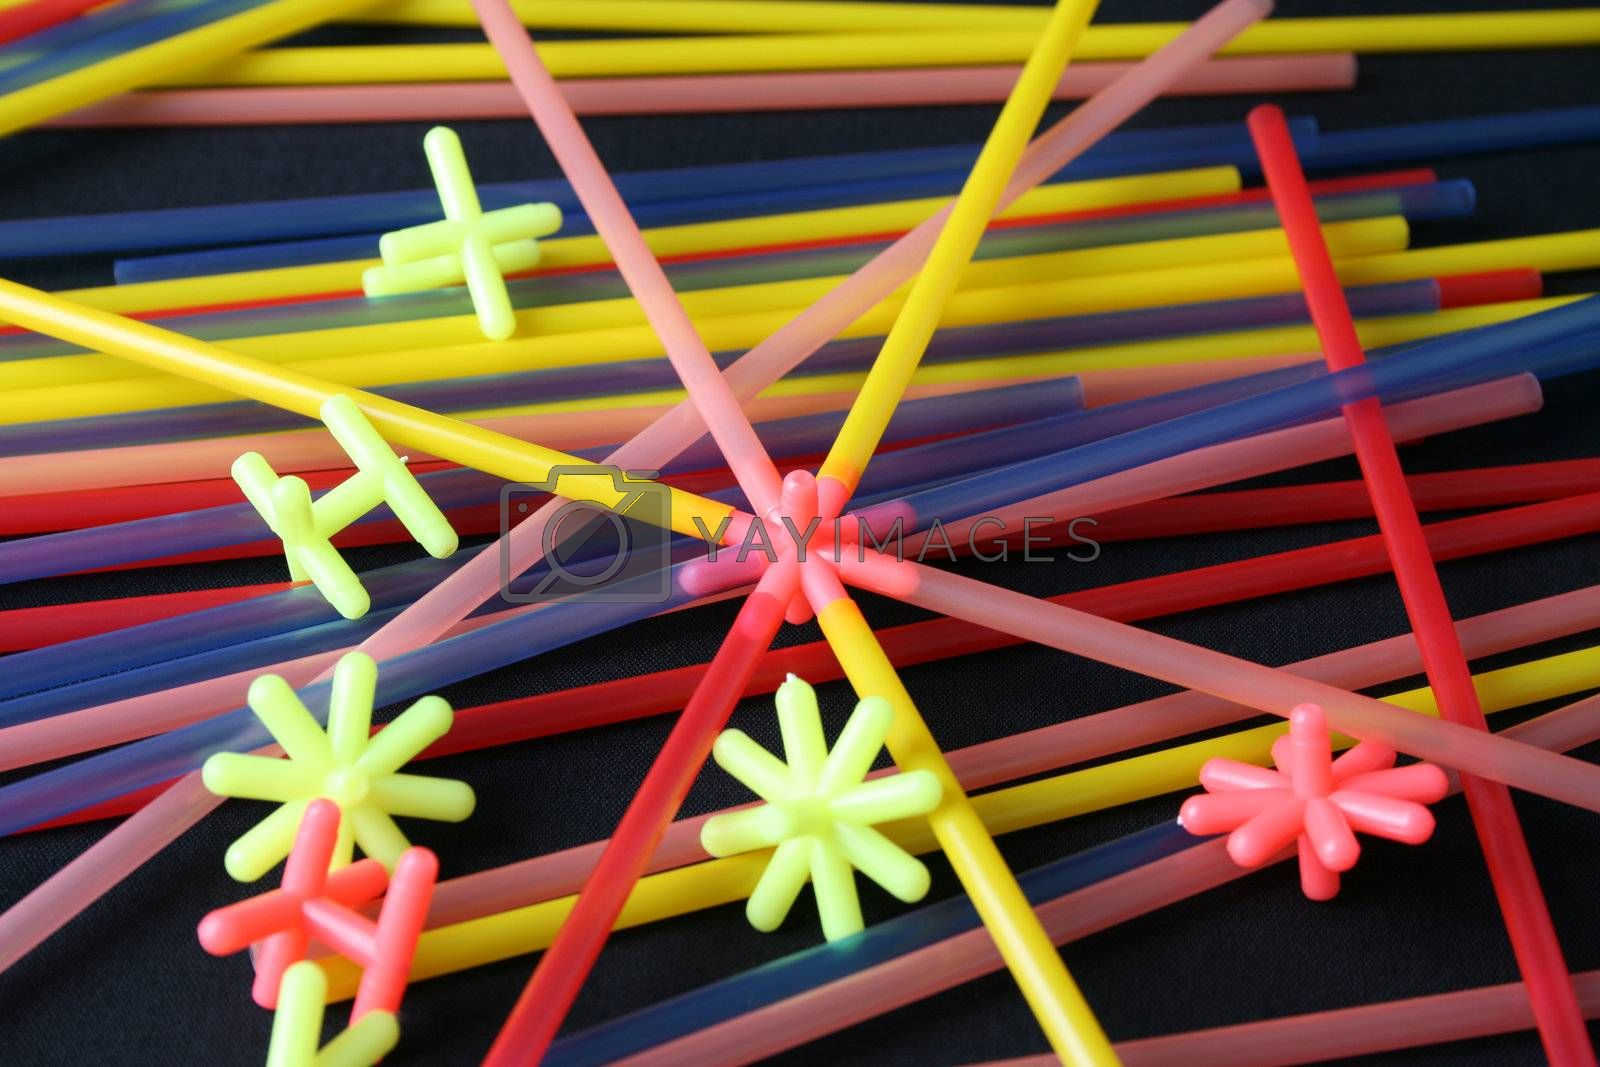 Straws and shapes, educational toys in bright colors